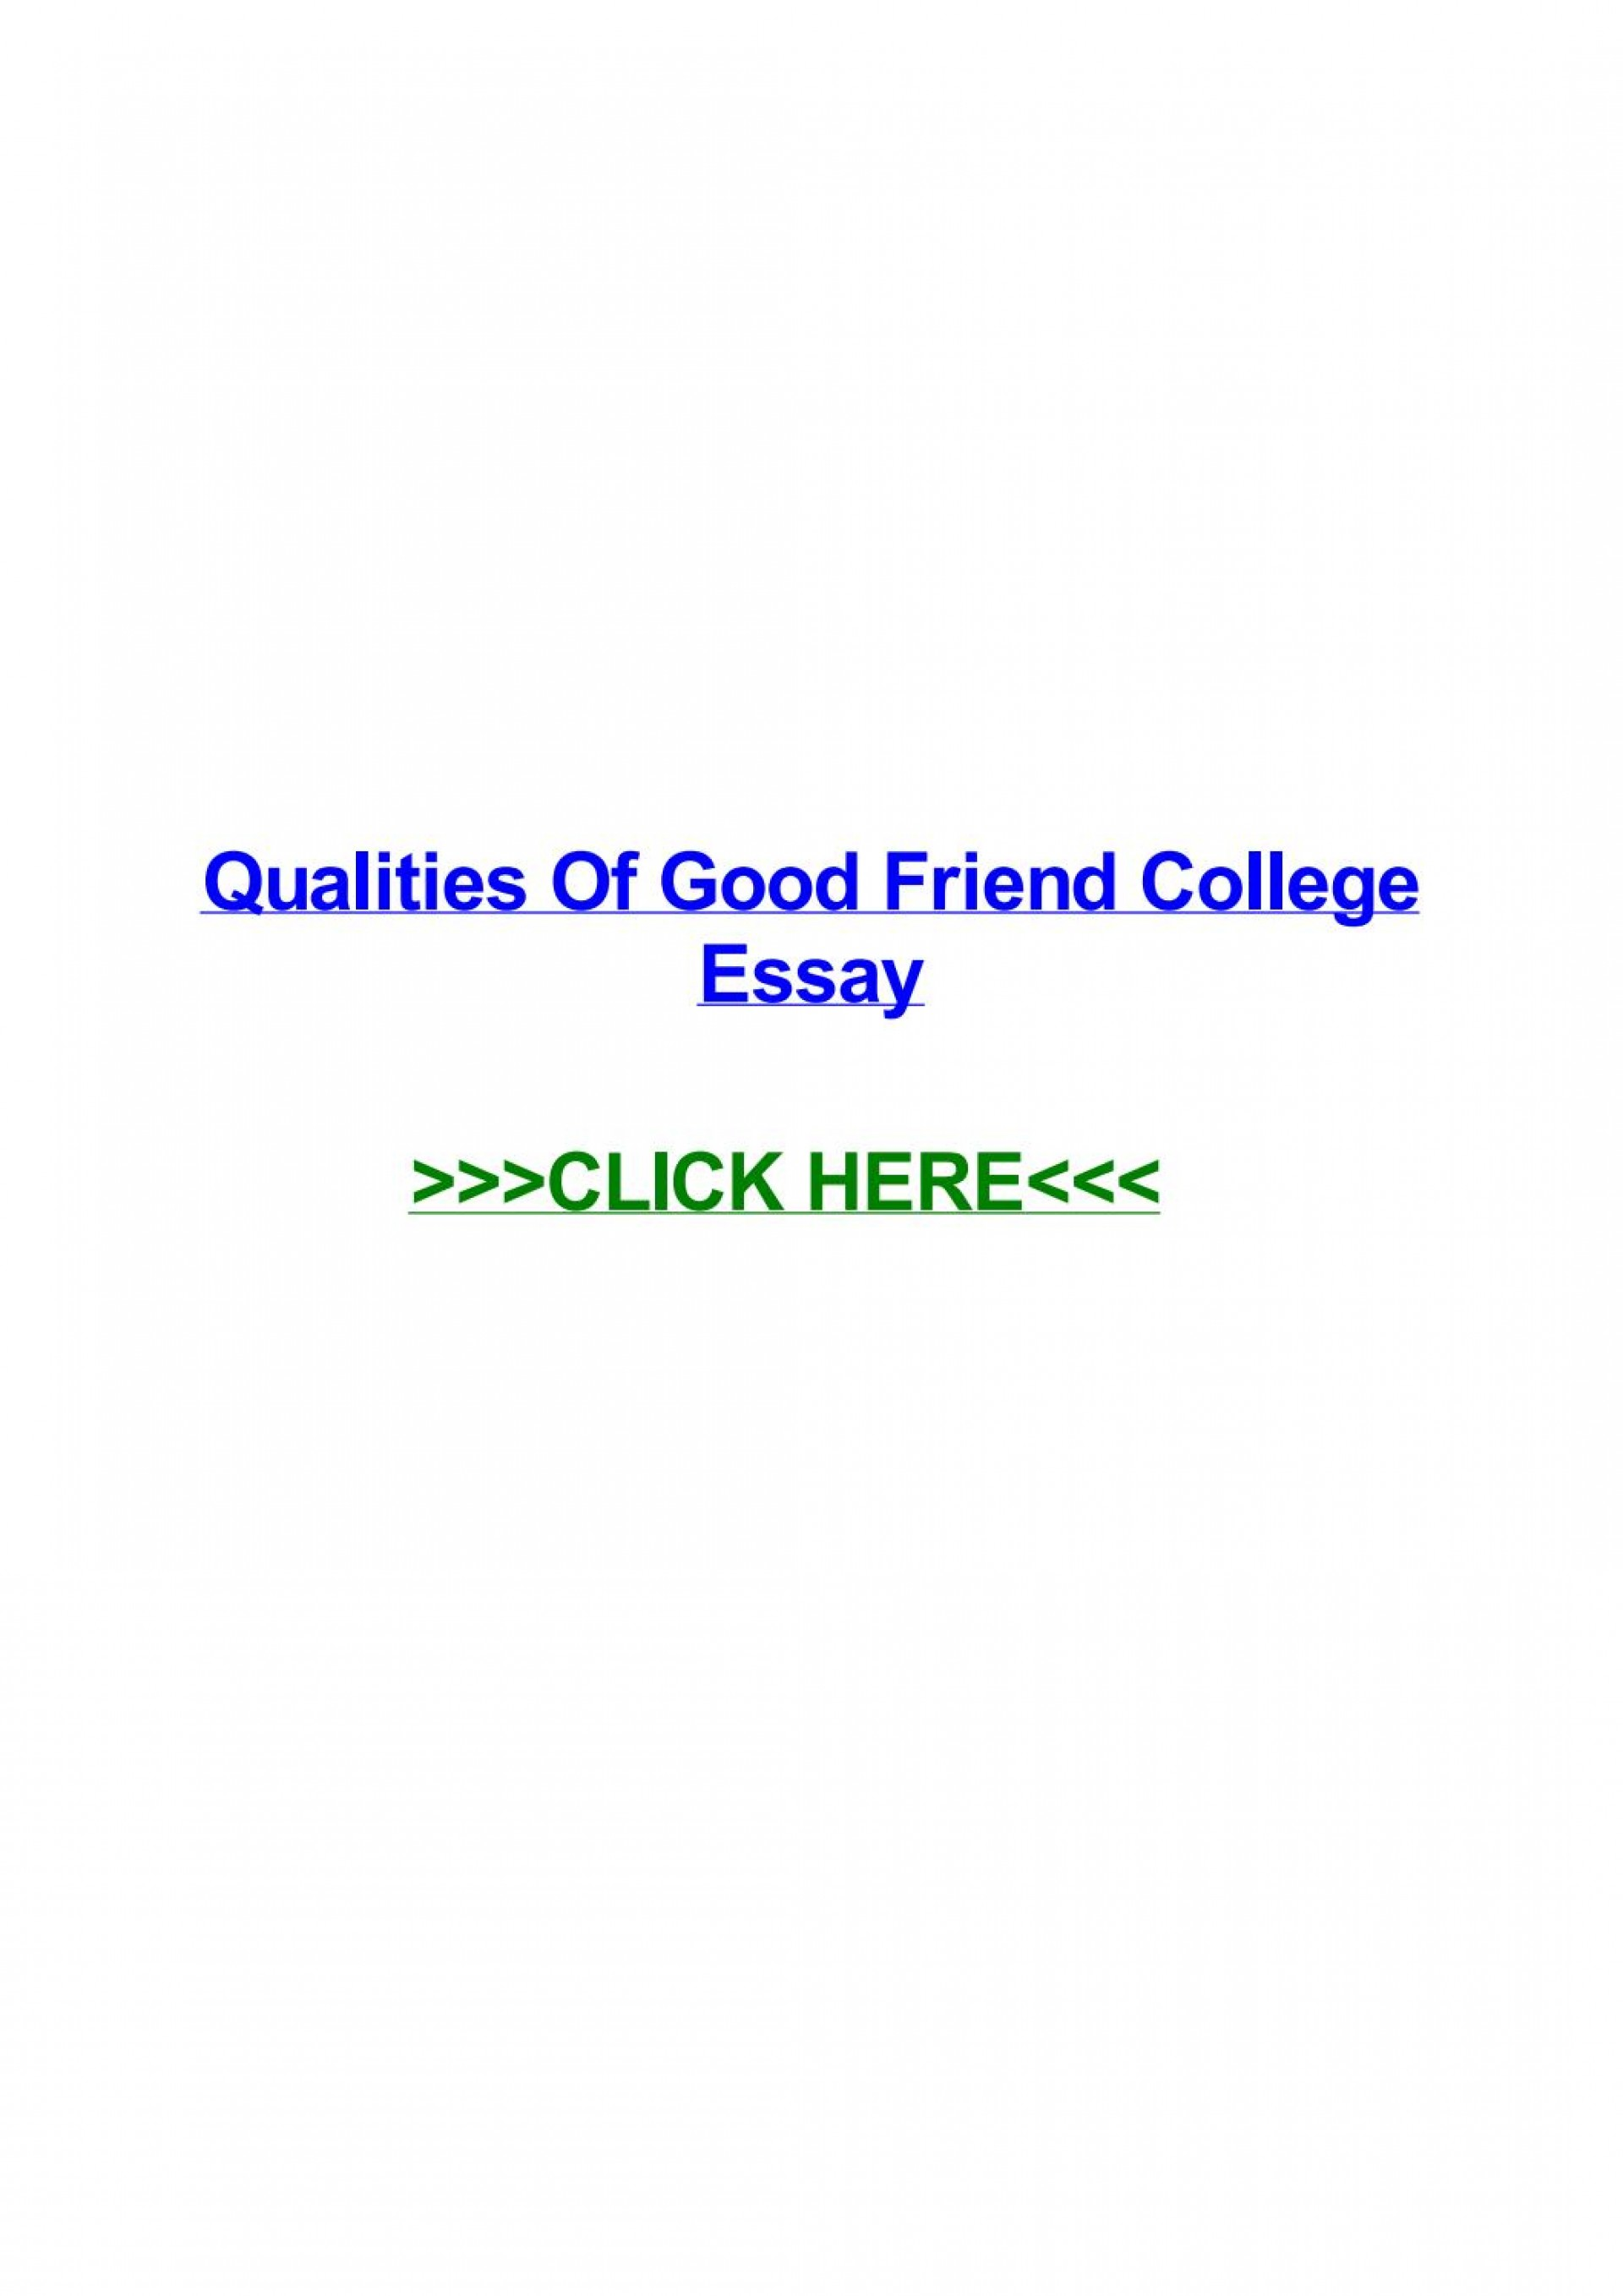 005 Essay Example Page 1 Qualities Of Good Amazing Friends A Friend In Hindi Spm Short 1920